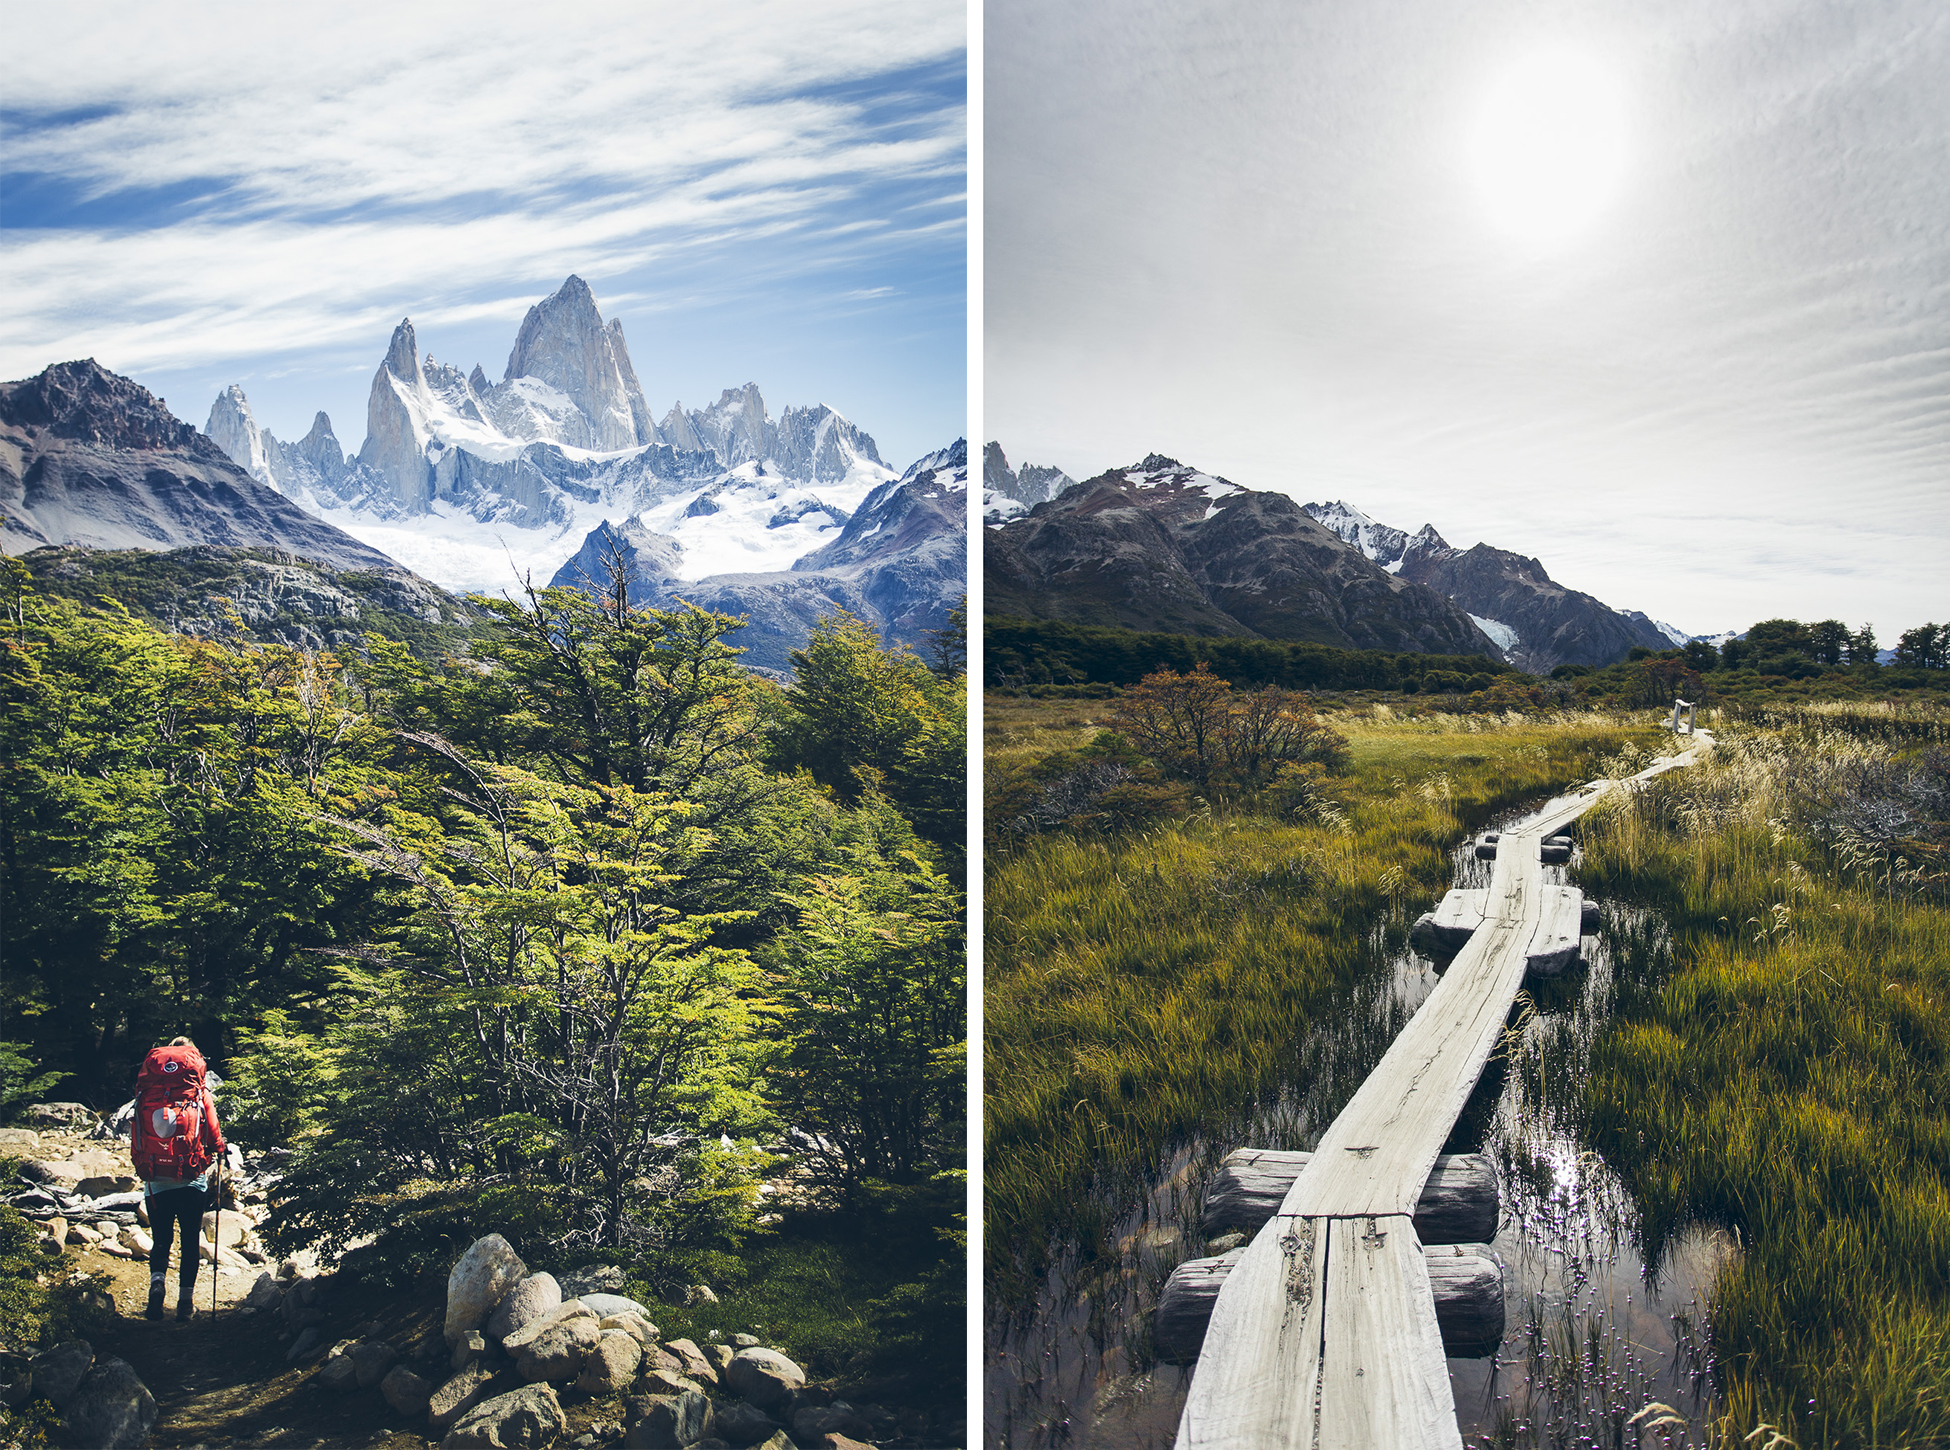 desktoglory_fitz_roy-30 copy